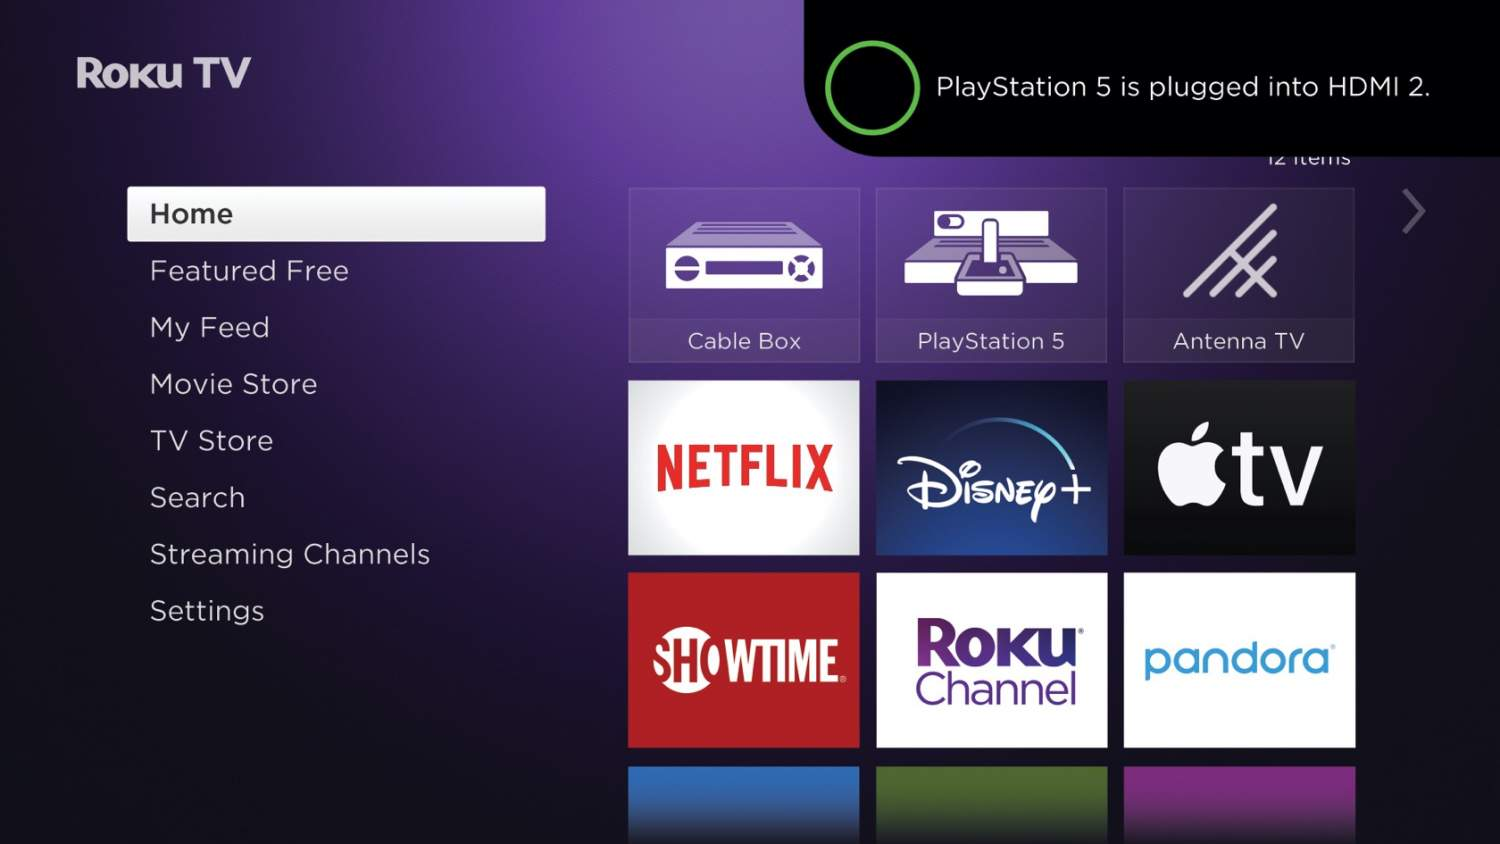 Roku-Automatic-game-console-configuration.jpg